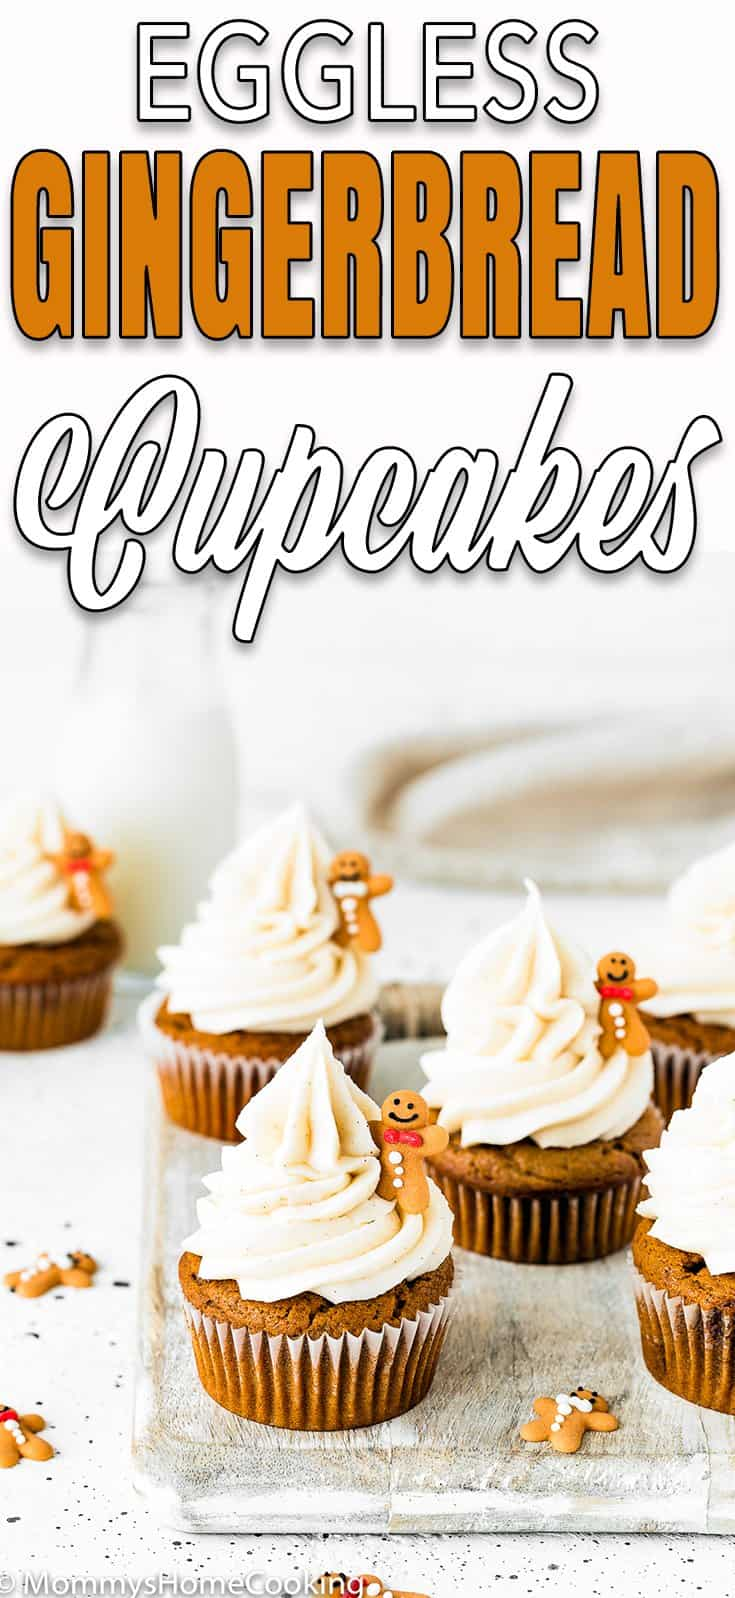 Easy Eggless Gingerbread Cupcakes with cream cheese frosting with descriptive text